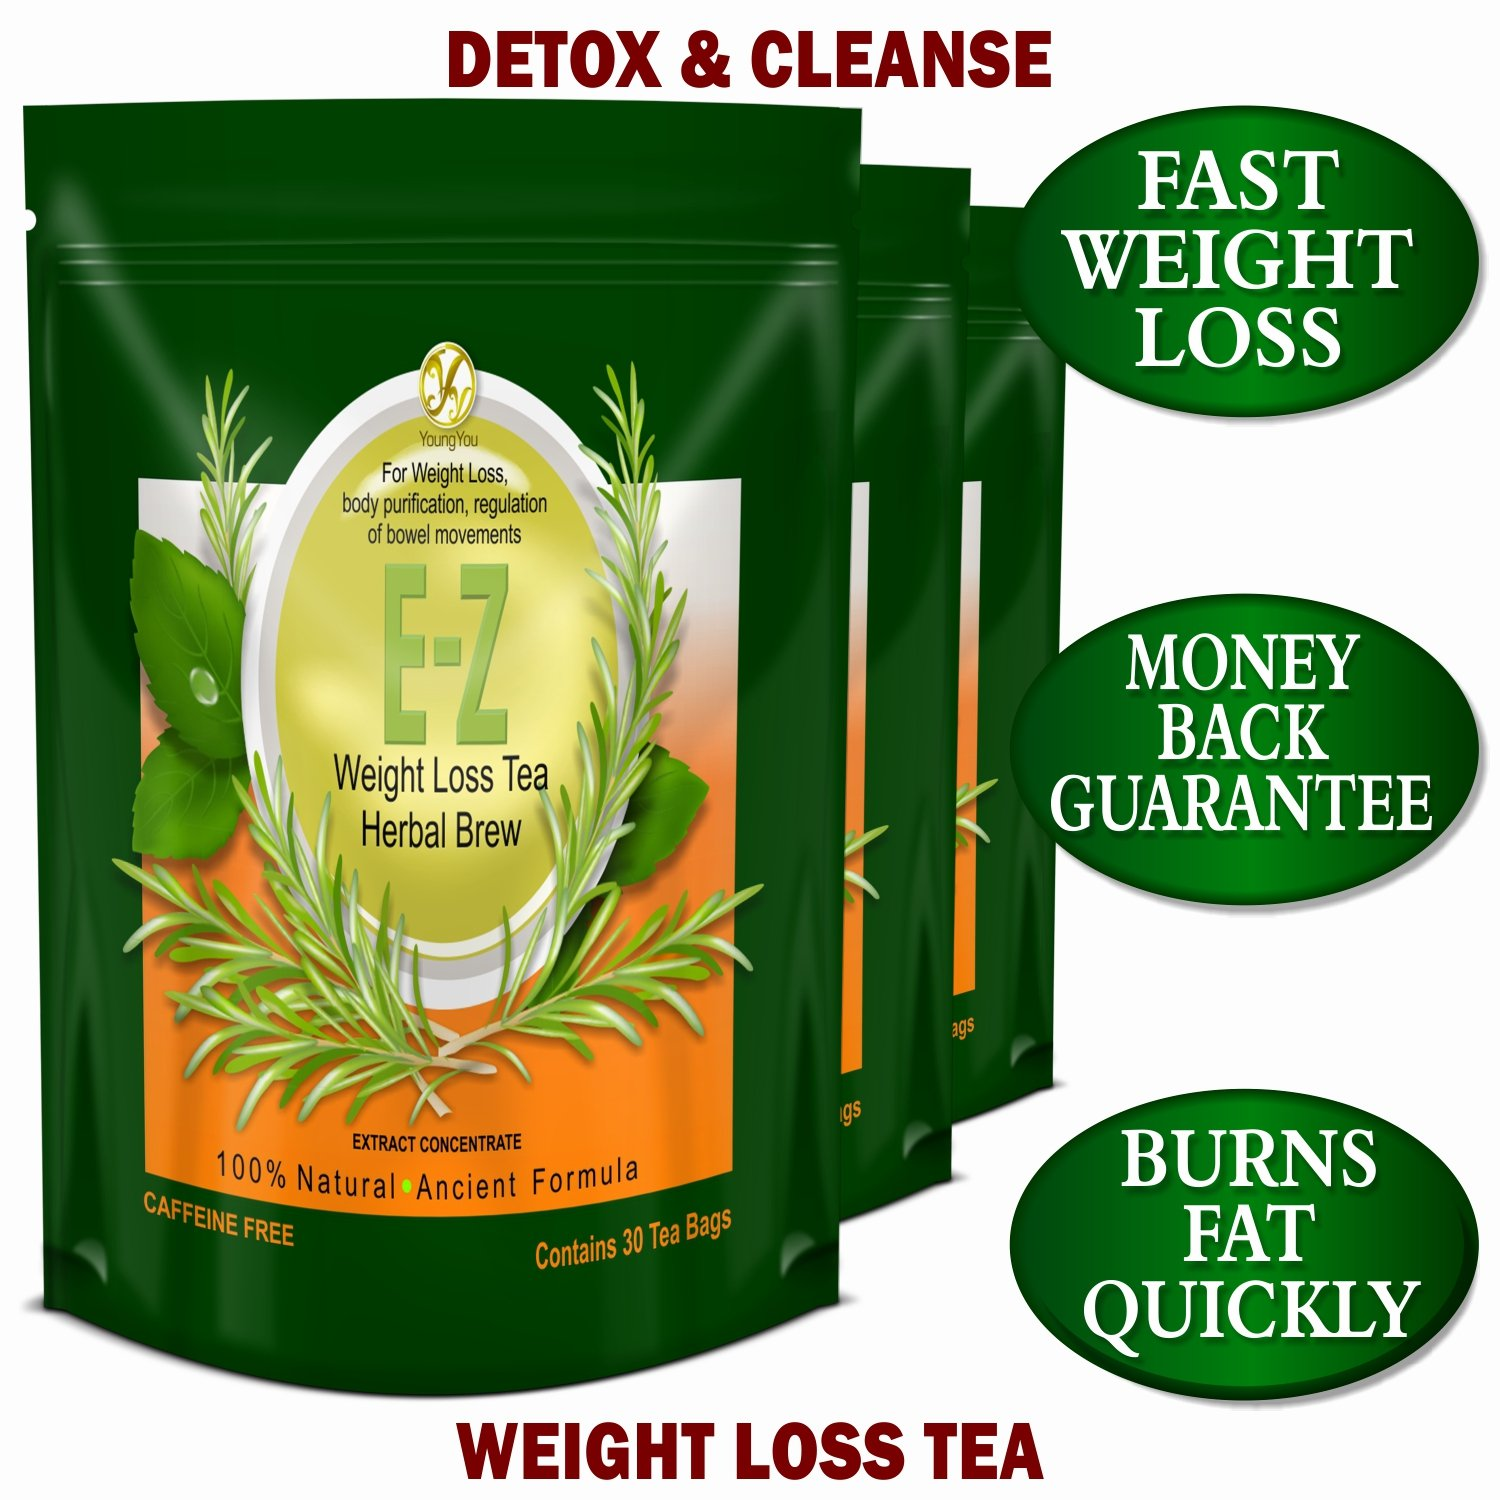 Amazon.com: E-Z WEIGHT LOSS DETOX TEA - BELLY FAT - APPETITE CONTROL - BODY CLEANSE – COLON DETOX – WEIGHT LOSS: Health & Personal Care